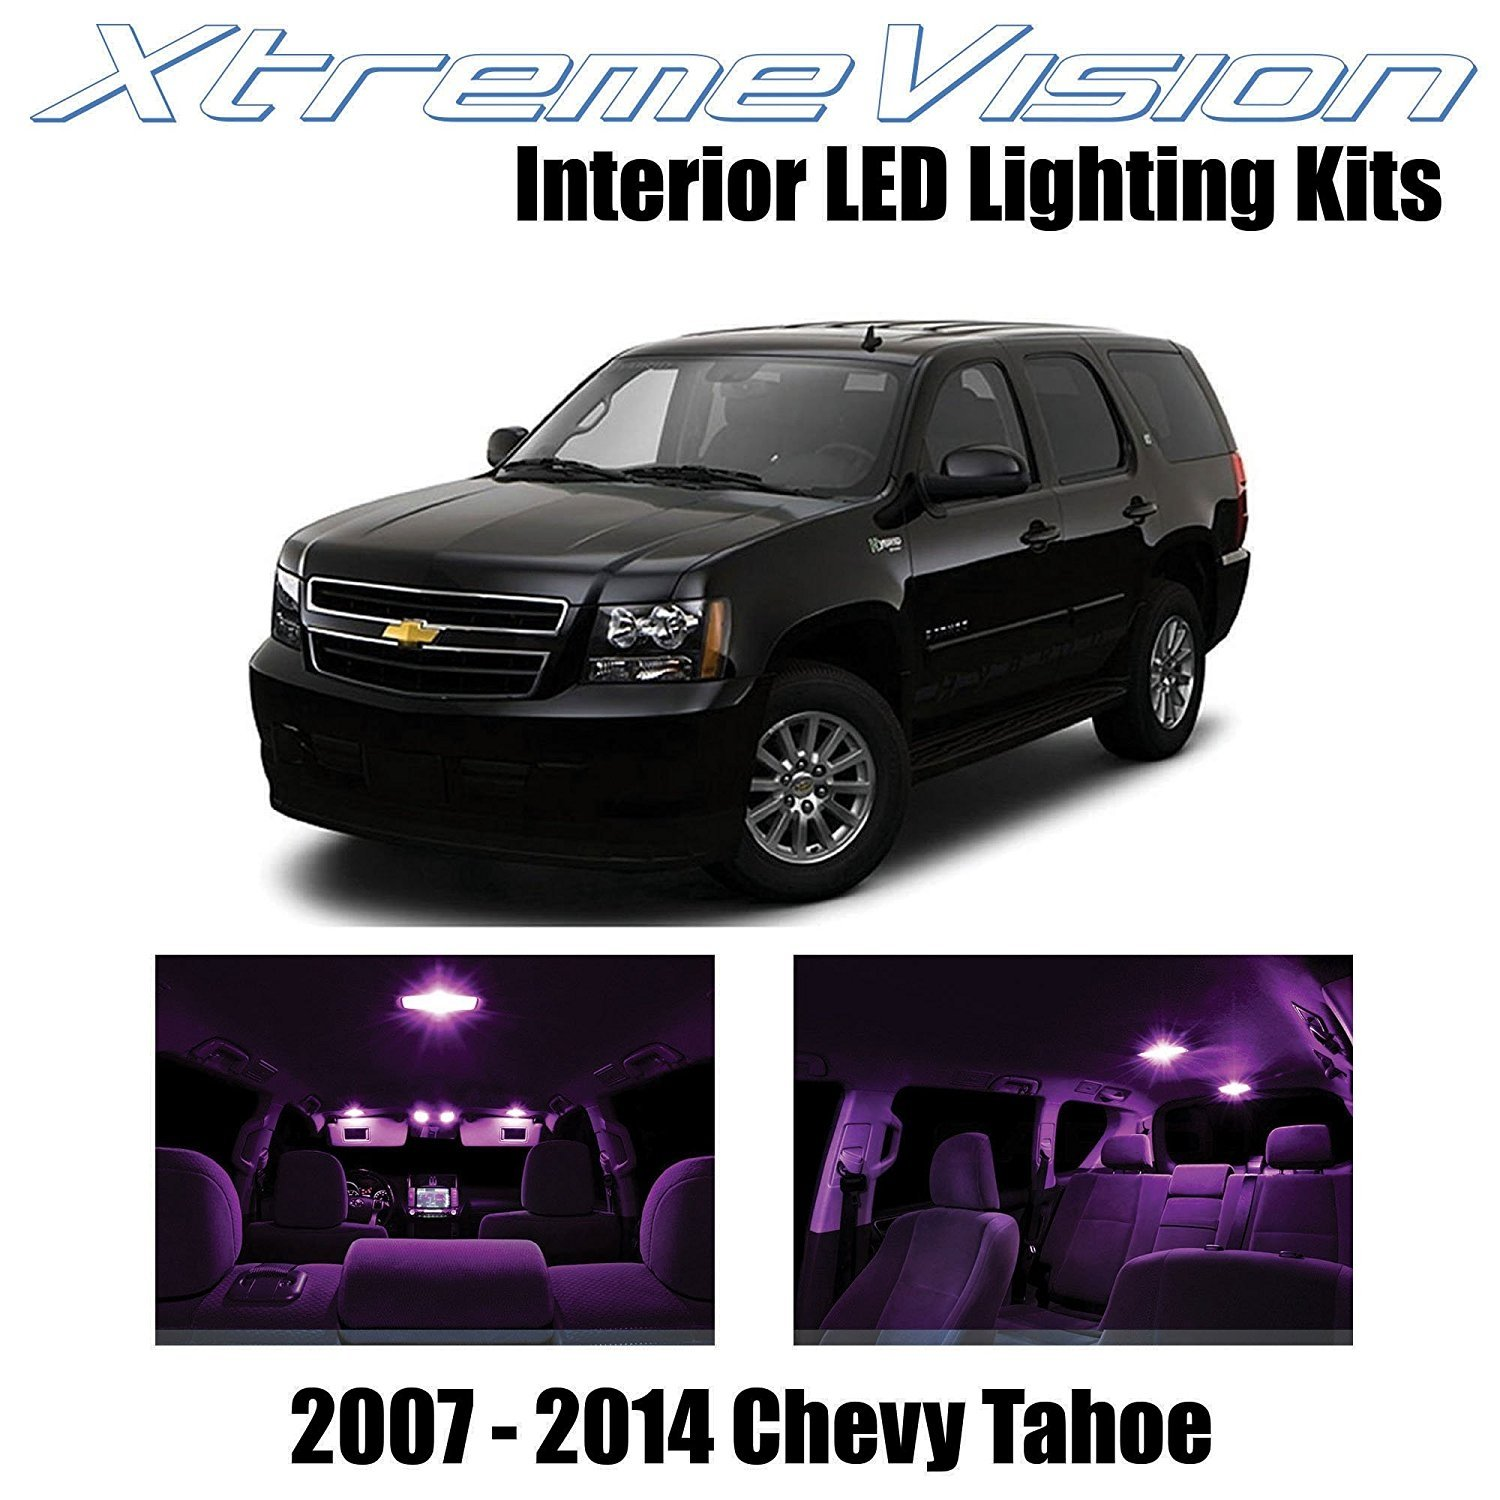 XtremeVision LED for Chevy Tahoe 2007-2014 (12 Pieces) Red Premium Interior LED Kit Package + Installation Tool